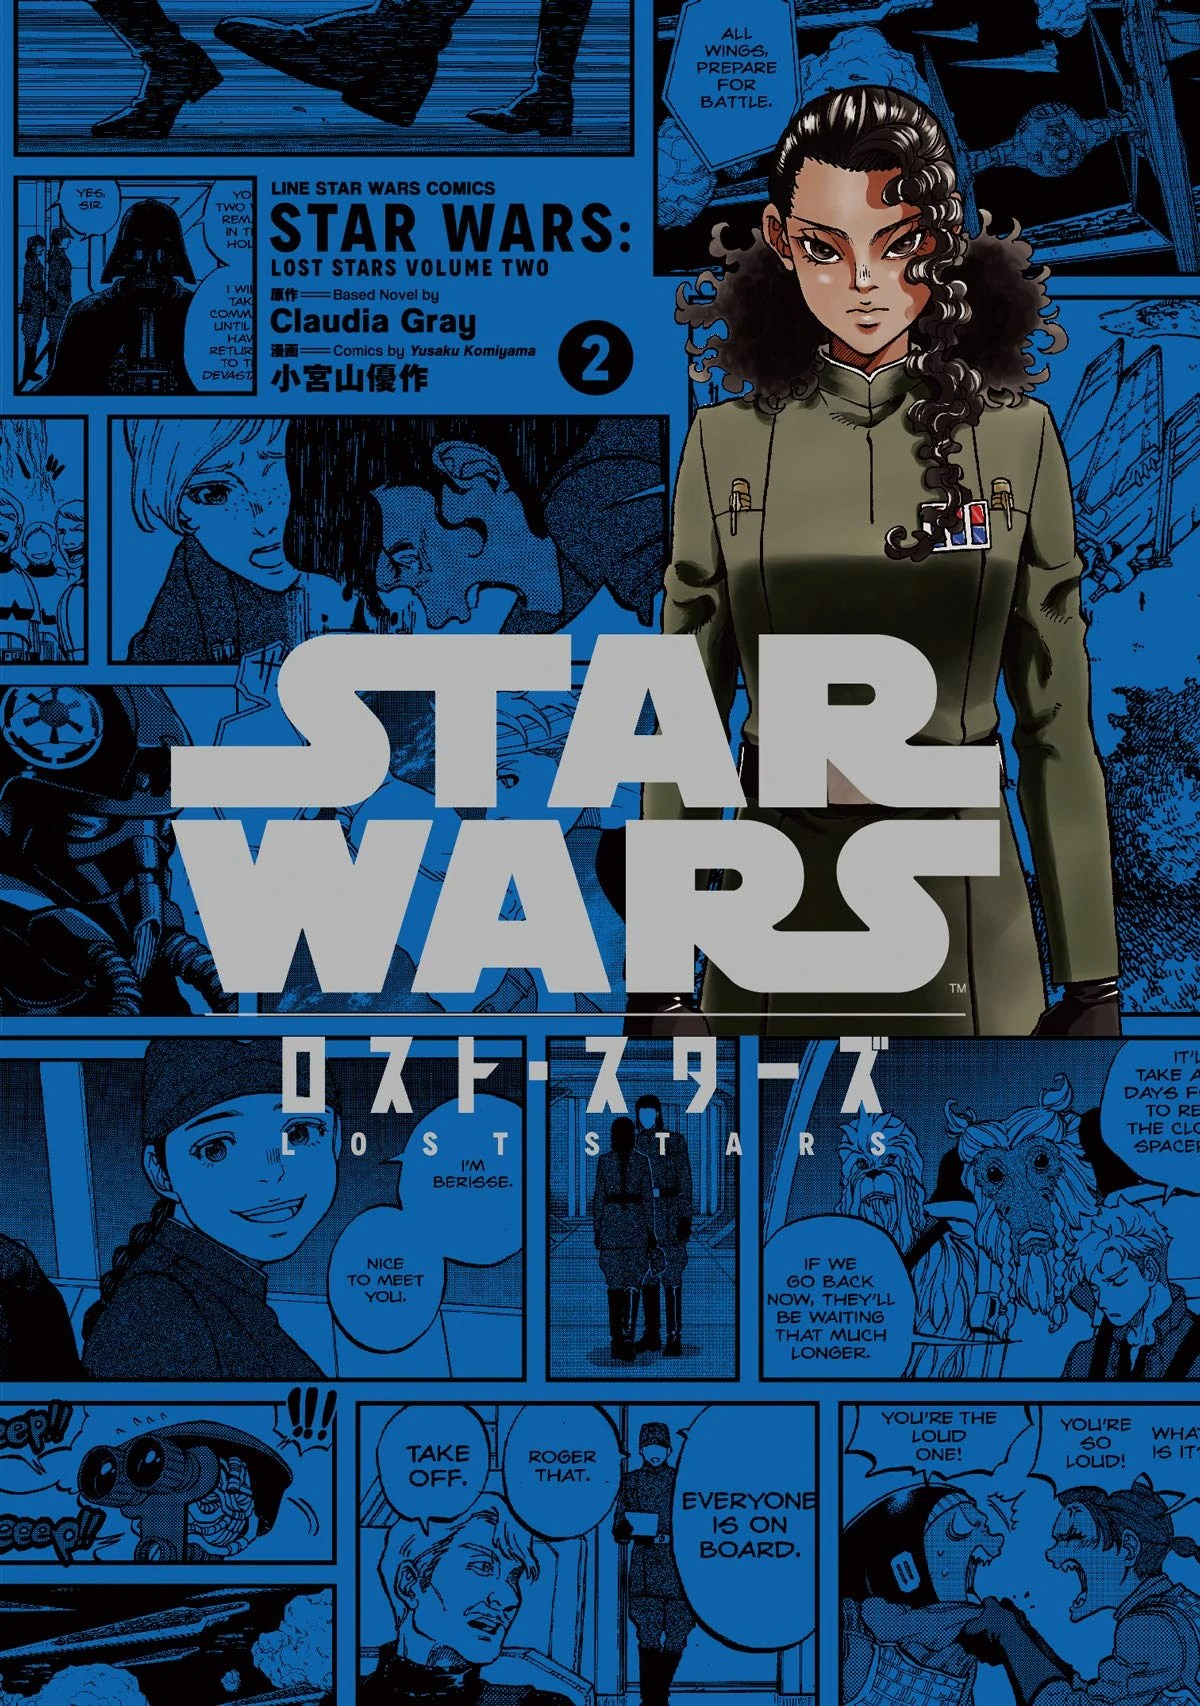 Libros Star Wars Pdf Star Wars Lost Stars Vol 2 Wookieepedia Fandom Powered By Wikia